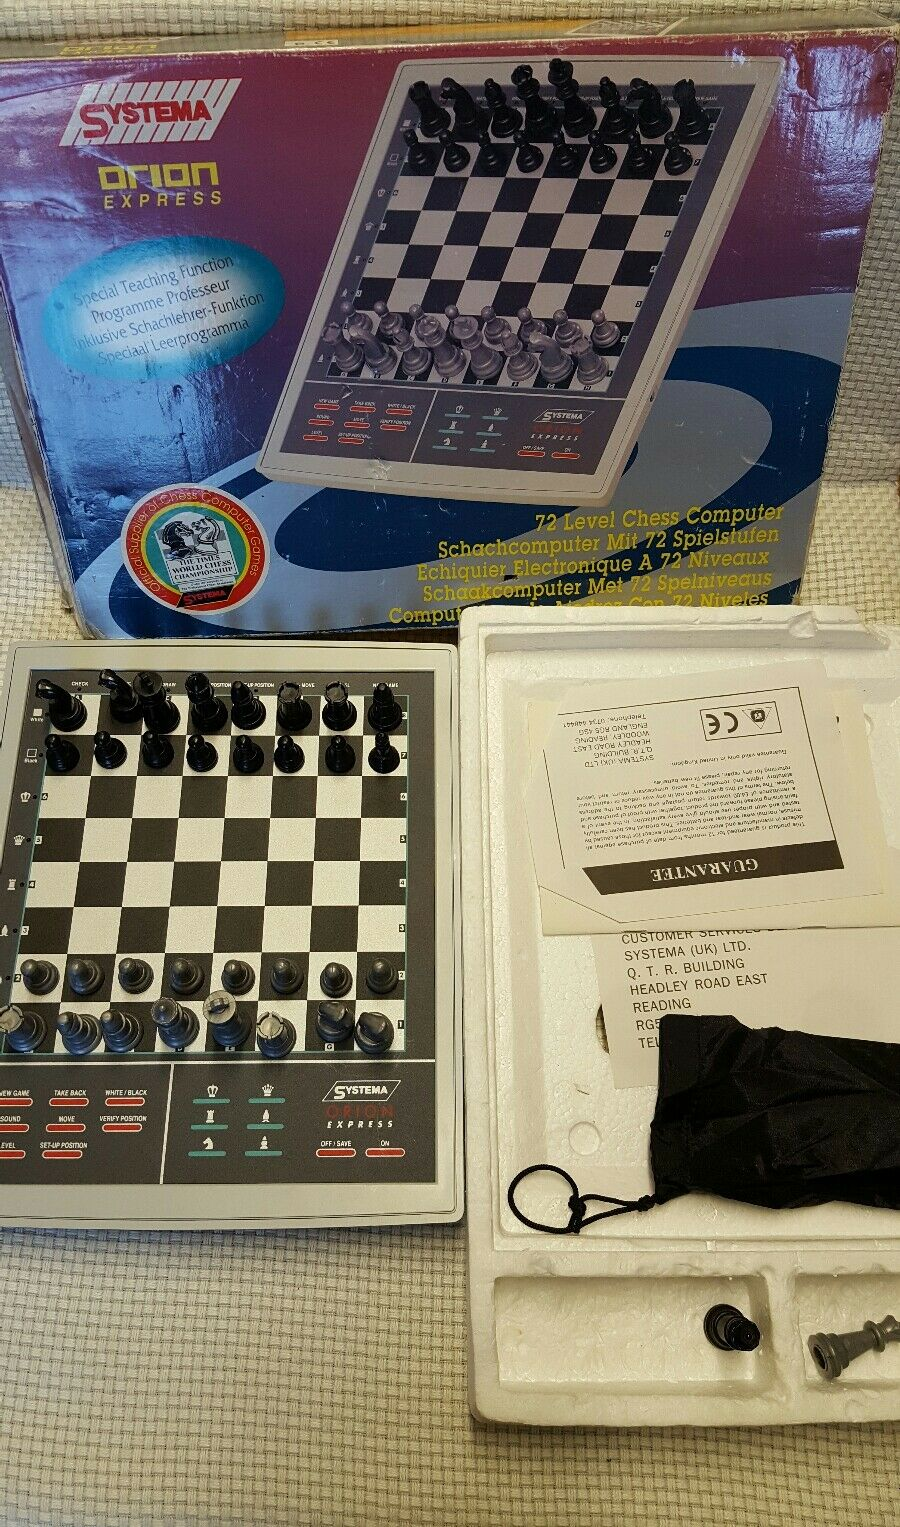 SYSTEMA Orion Express 72 livello Chess Computer  NO 5t-788